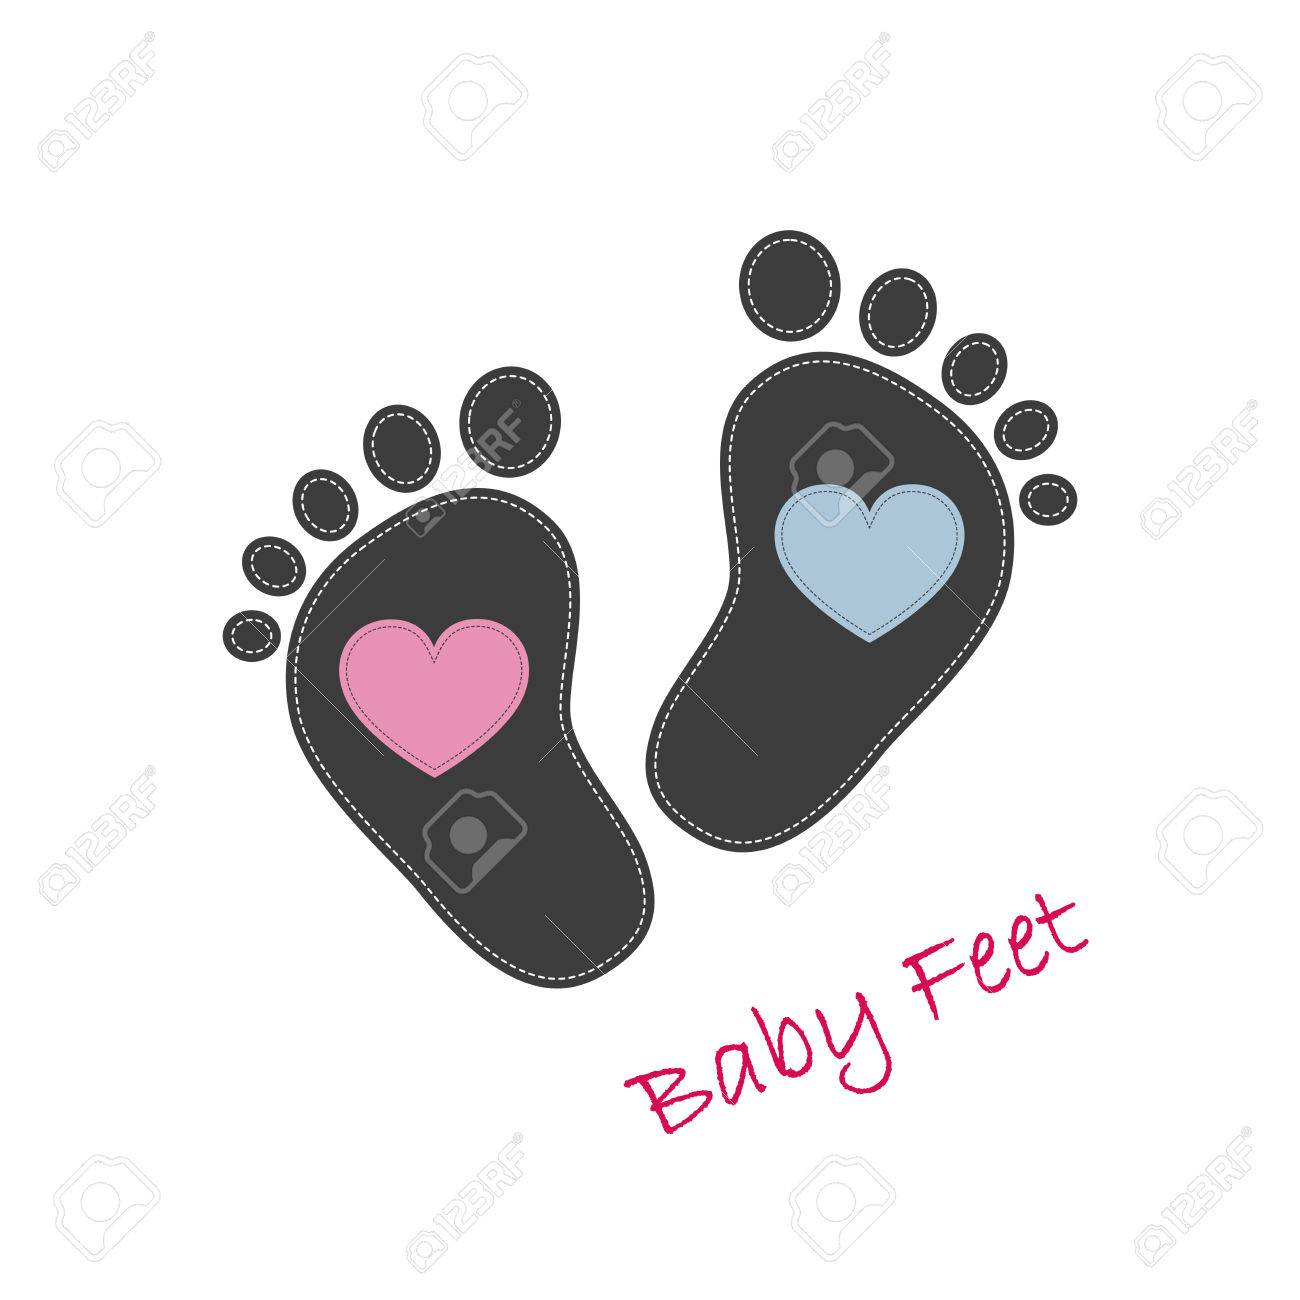 baby footprints with pink and blue hearts in the center baby rh 123rf com Hurt Foot Clip Art Cartoon Foot